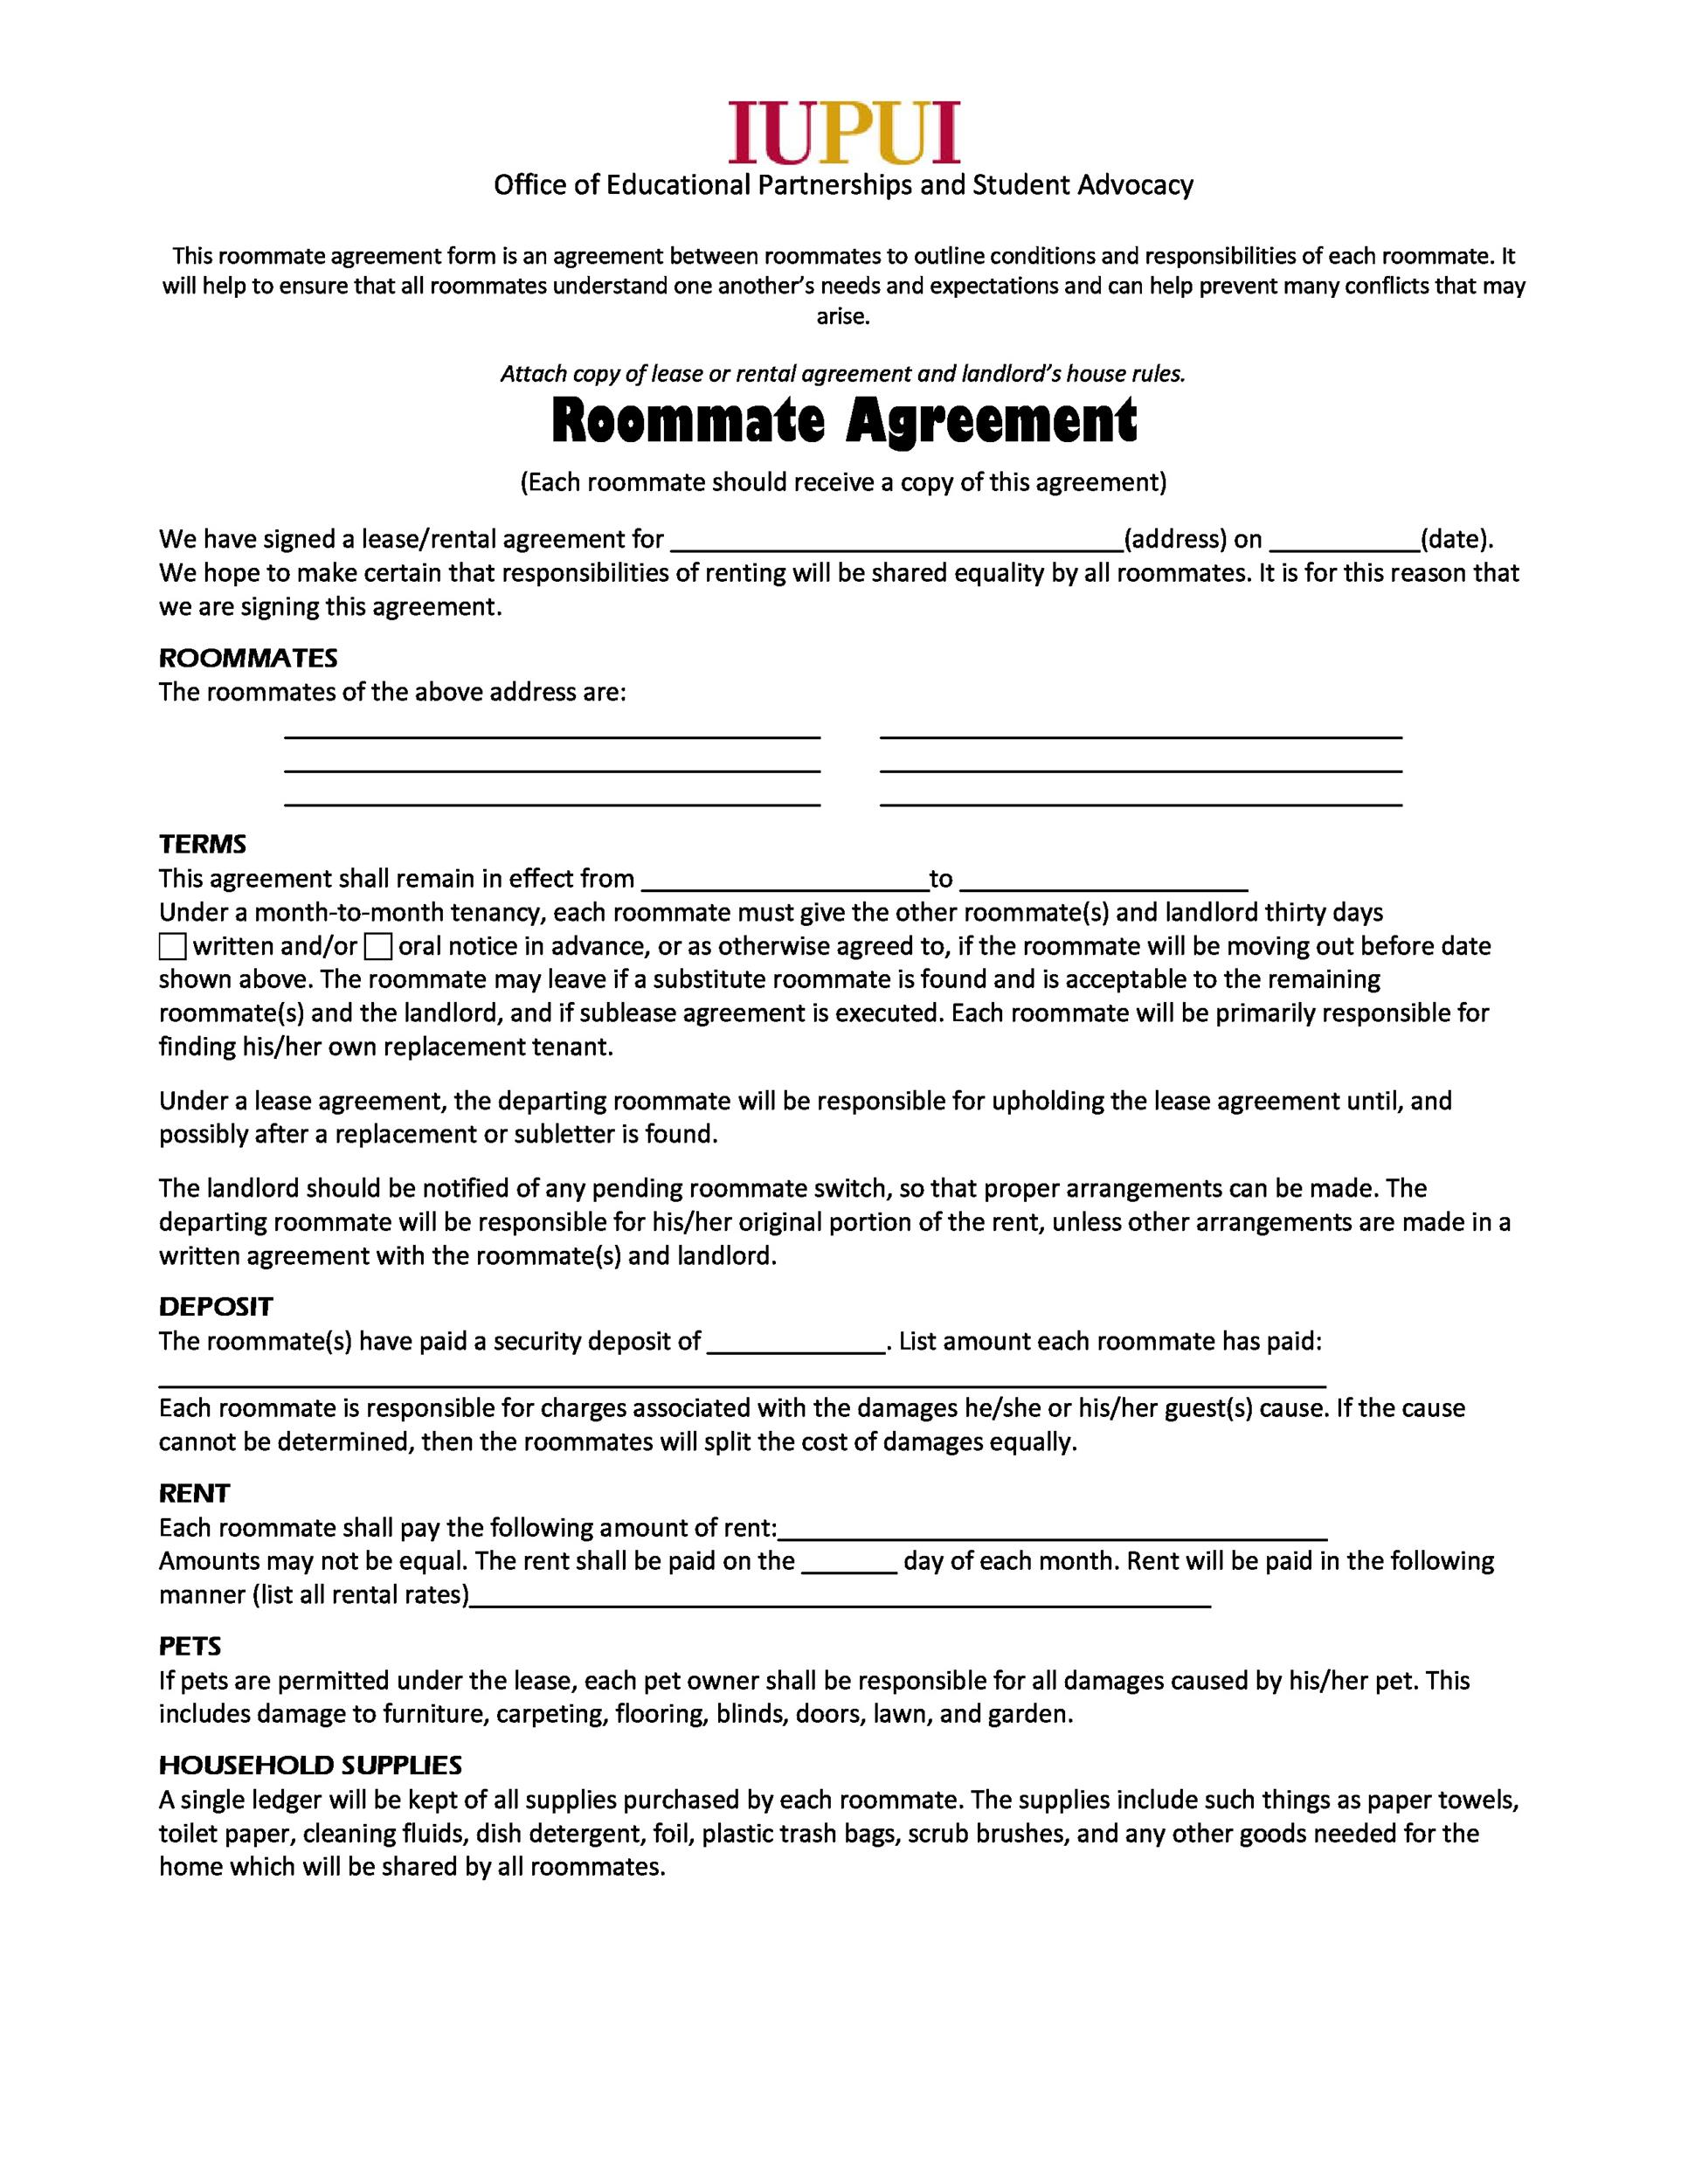 Charming Printable Roommate Agreement Template 14 Inside Mutual Agreement Template